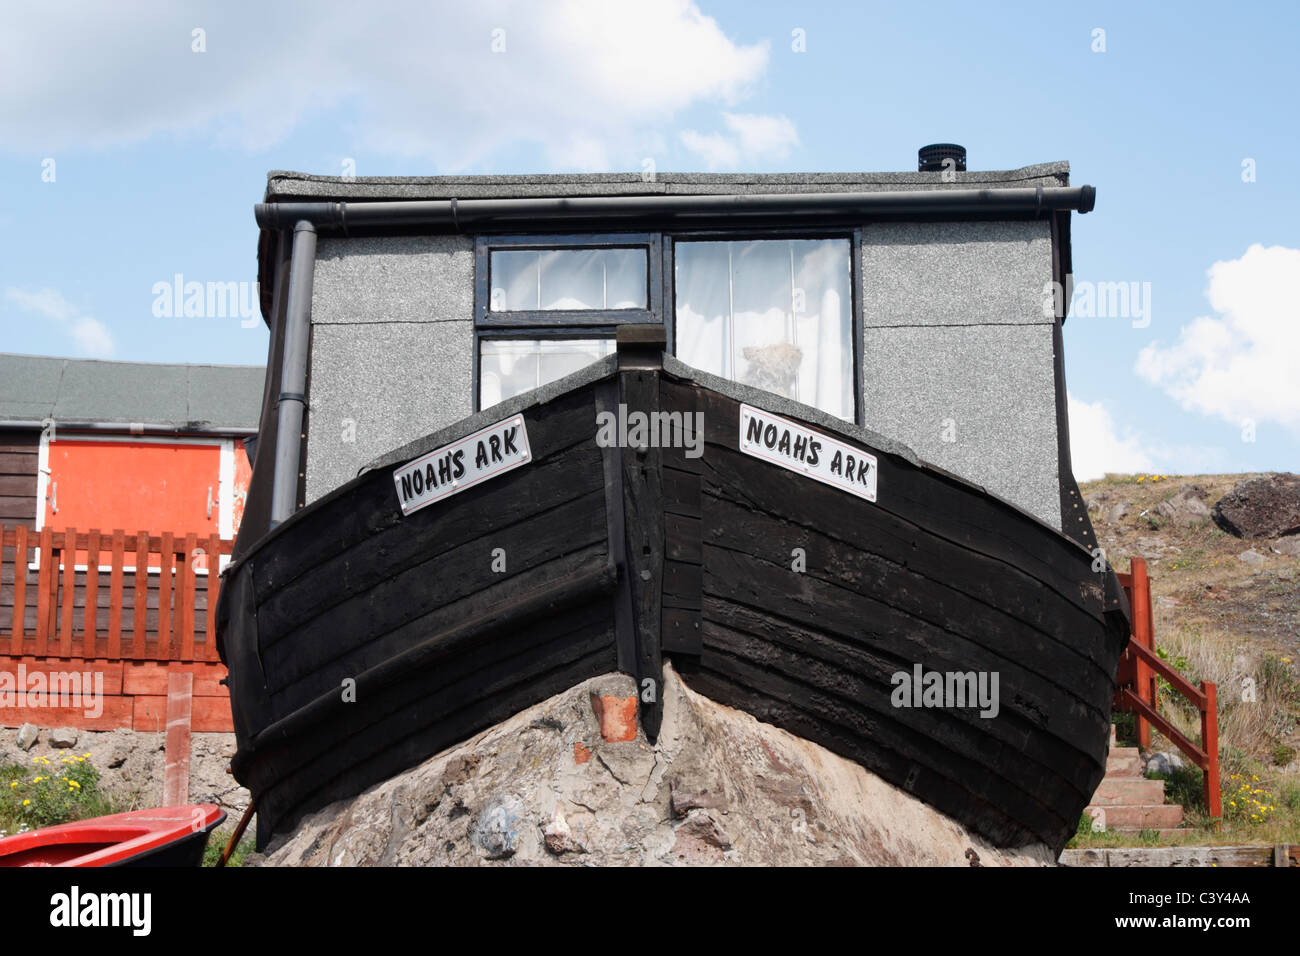 Houseboat/fisherman's hut called Noah's Ark at Paddy's Hole, South Gare, Redcar, Cleveland, England - Stock Image